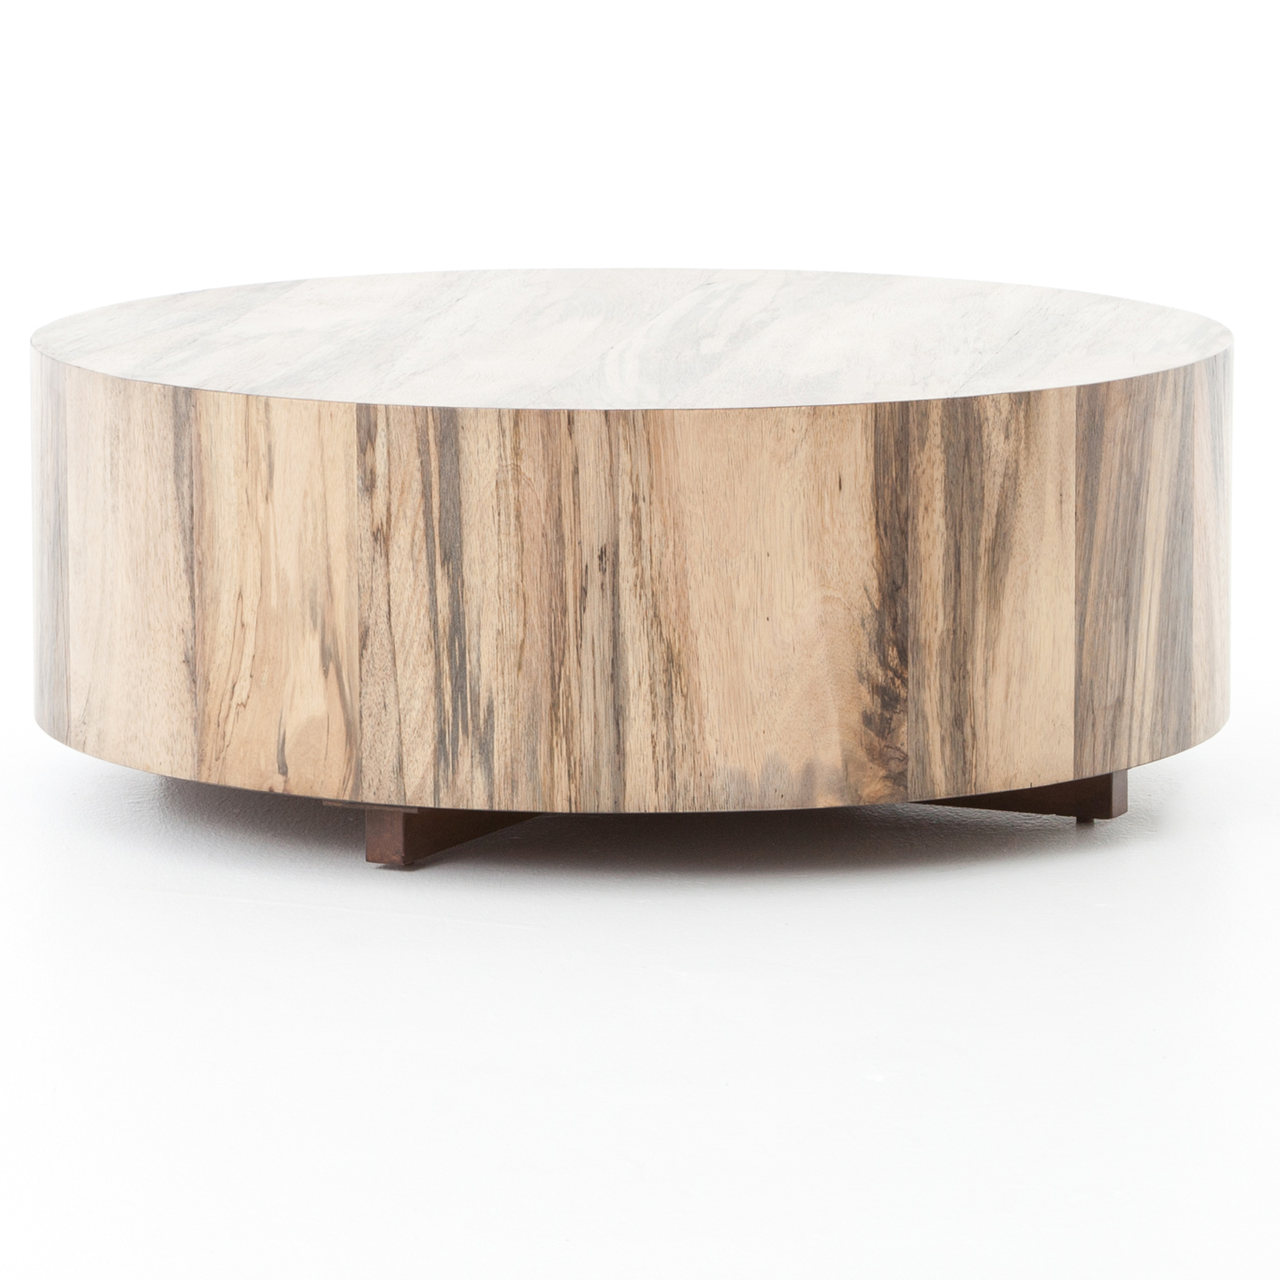 Hudson Spalted Rustic Wood Block Round Coffee Table Zin Home